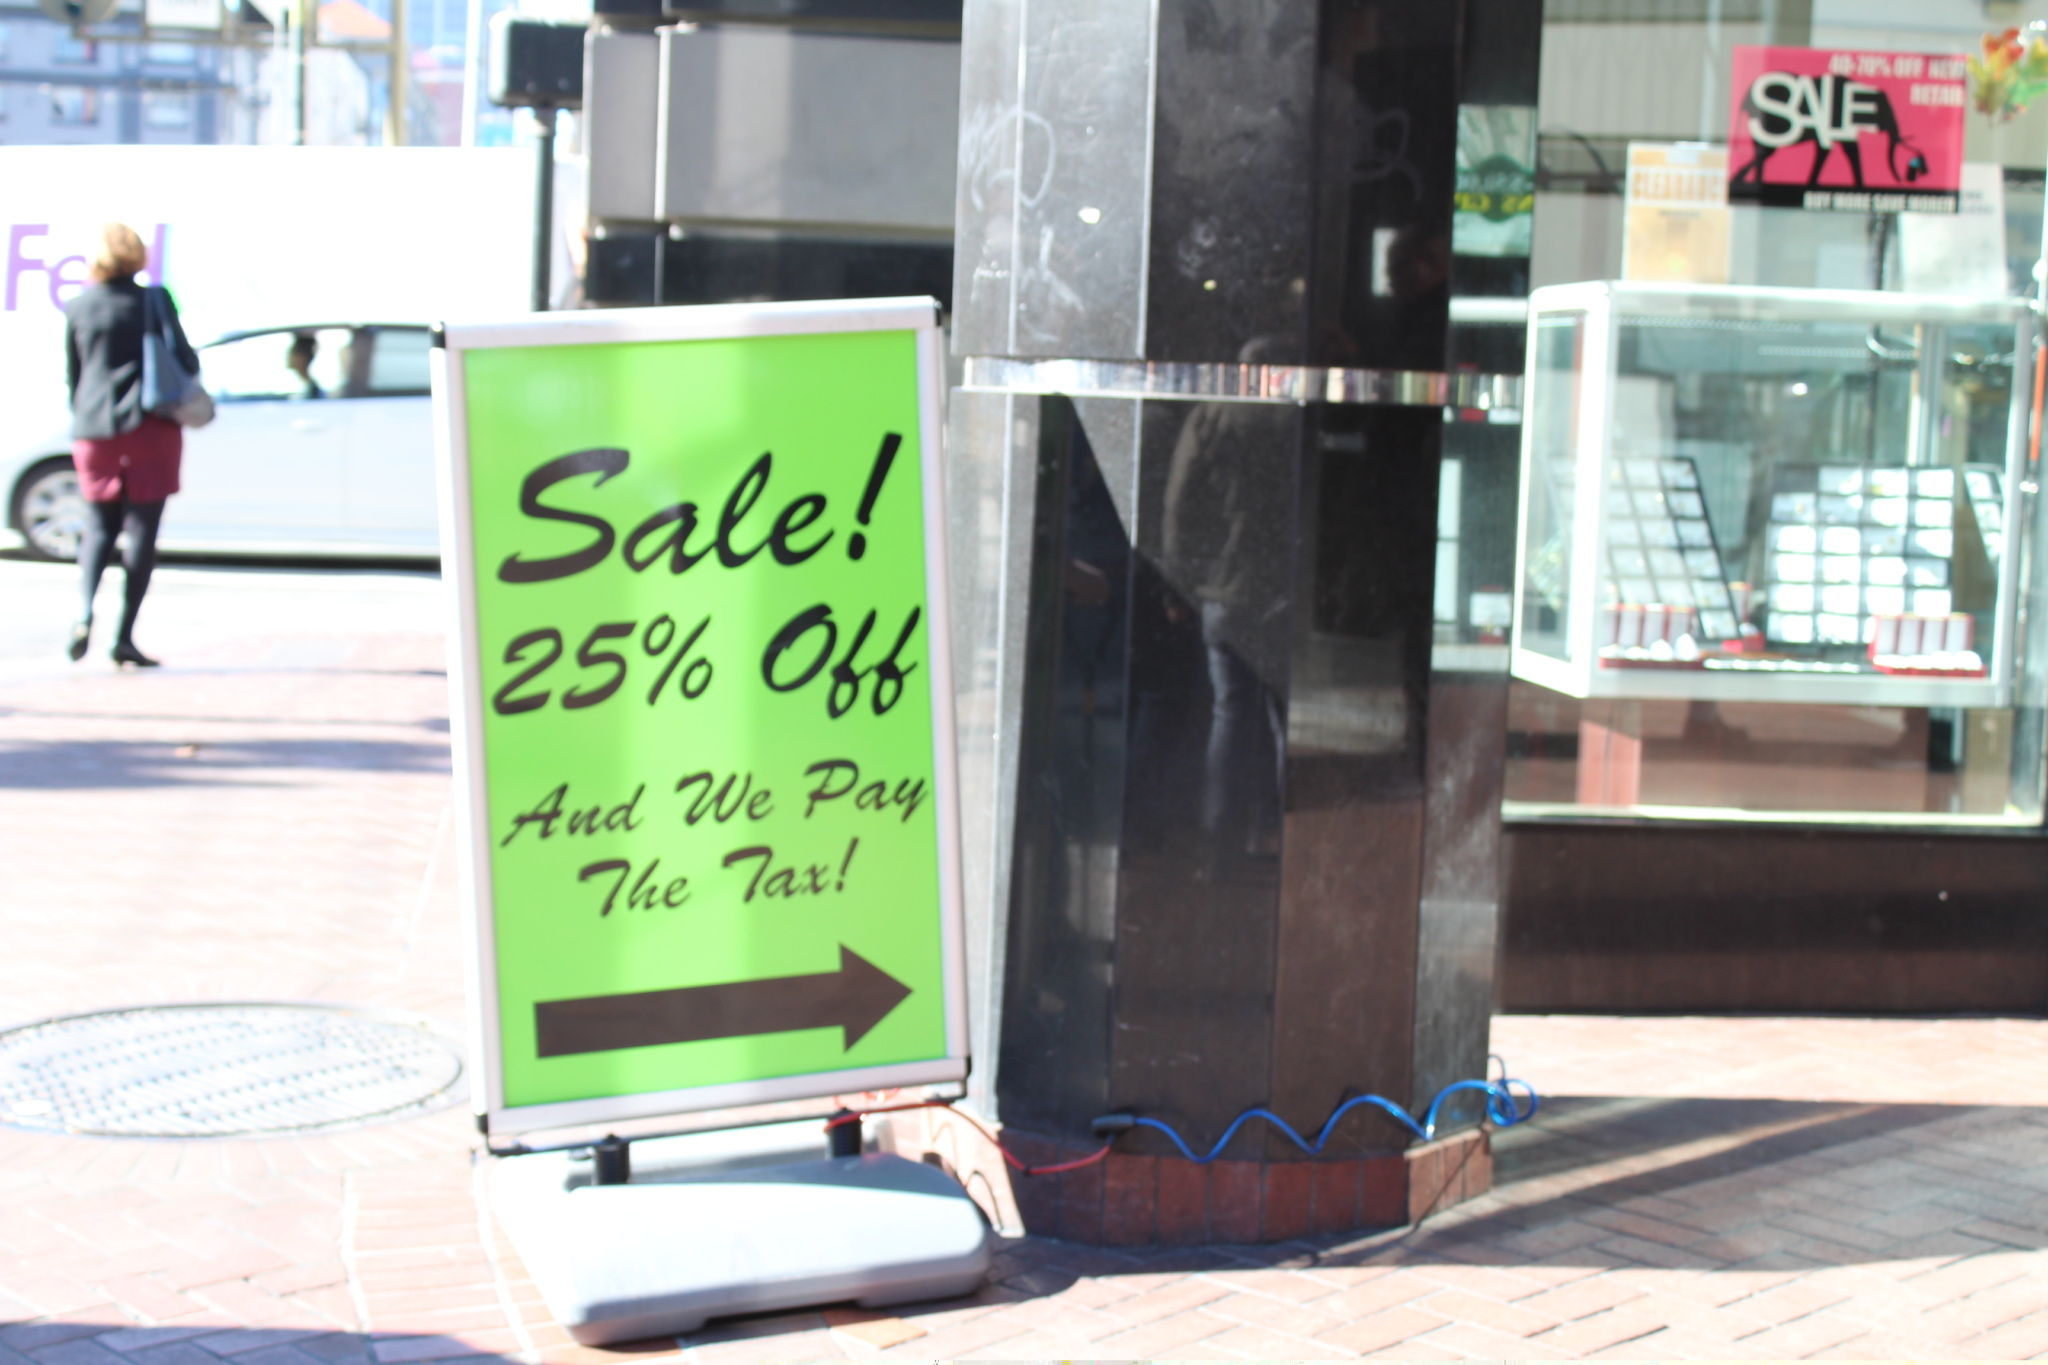 Sidewalk A Frame Signs Are Common Product Used To Serve Variety Of Uses By Businesses With Front Placing Customized